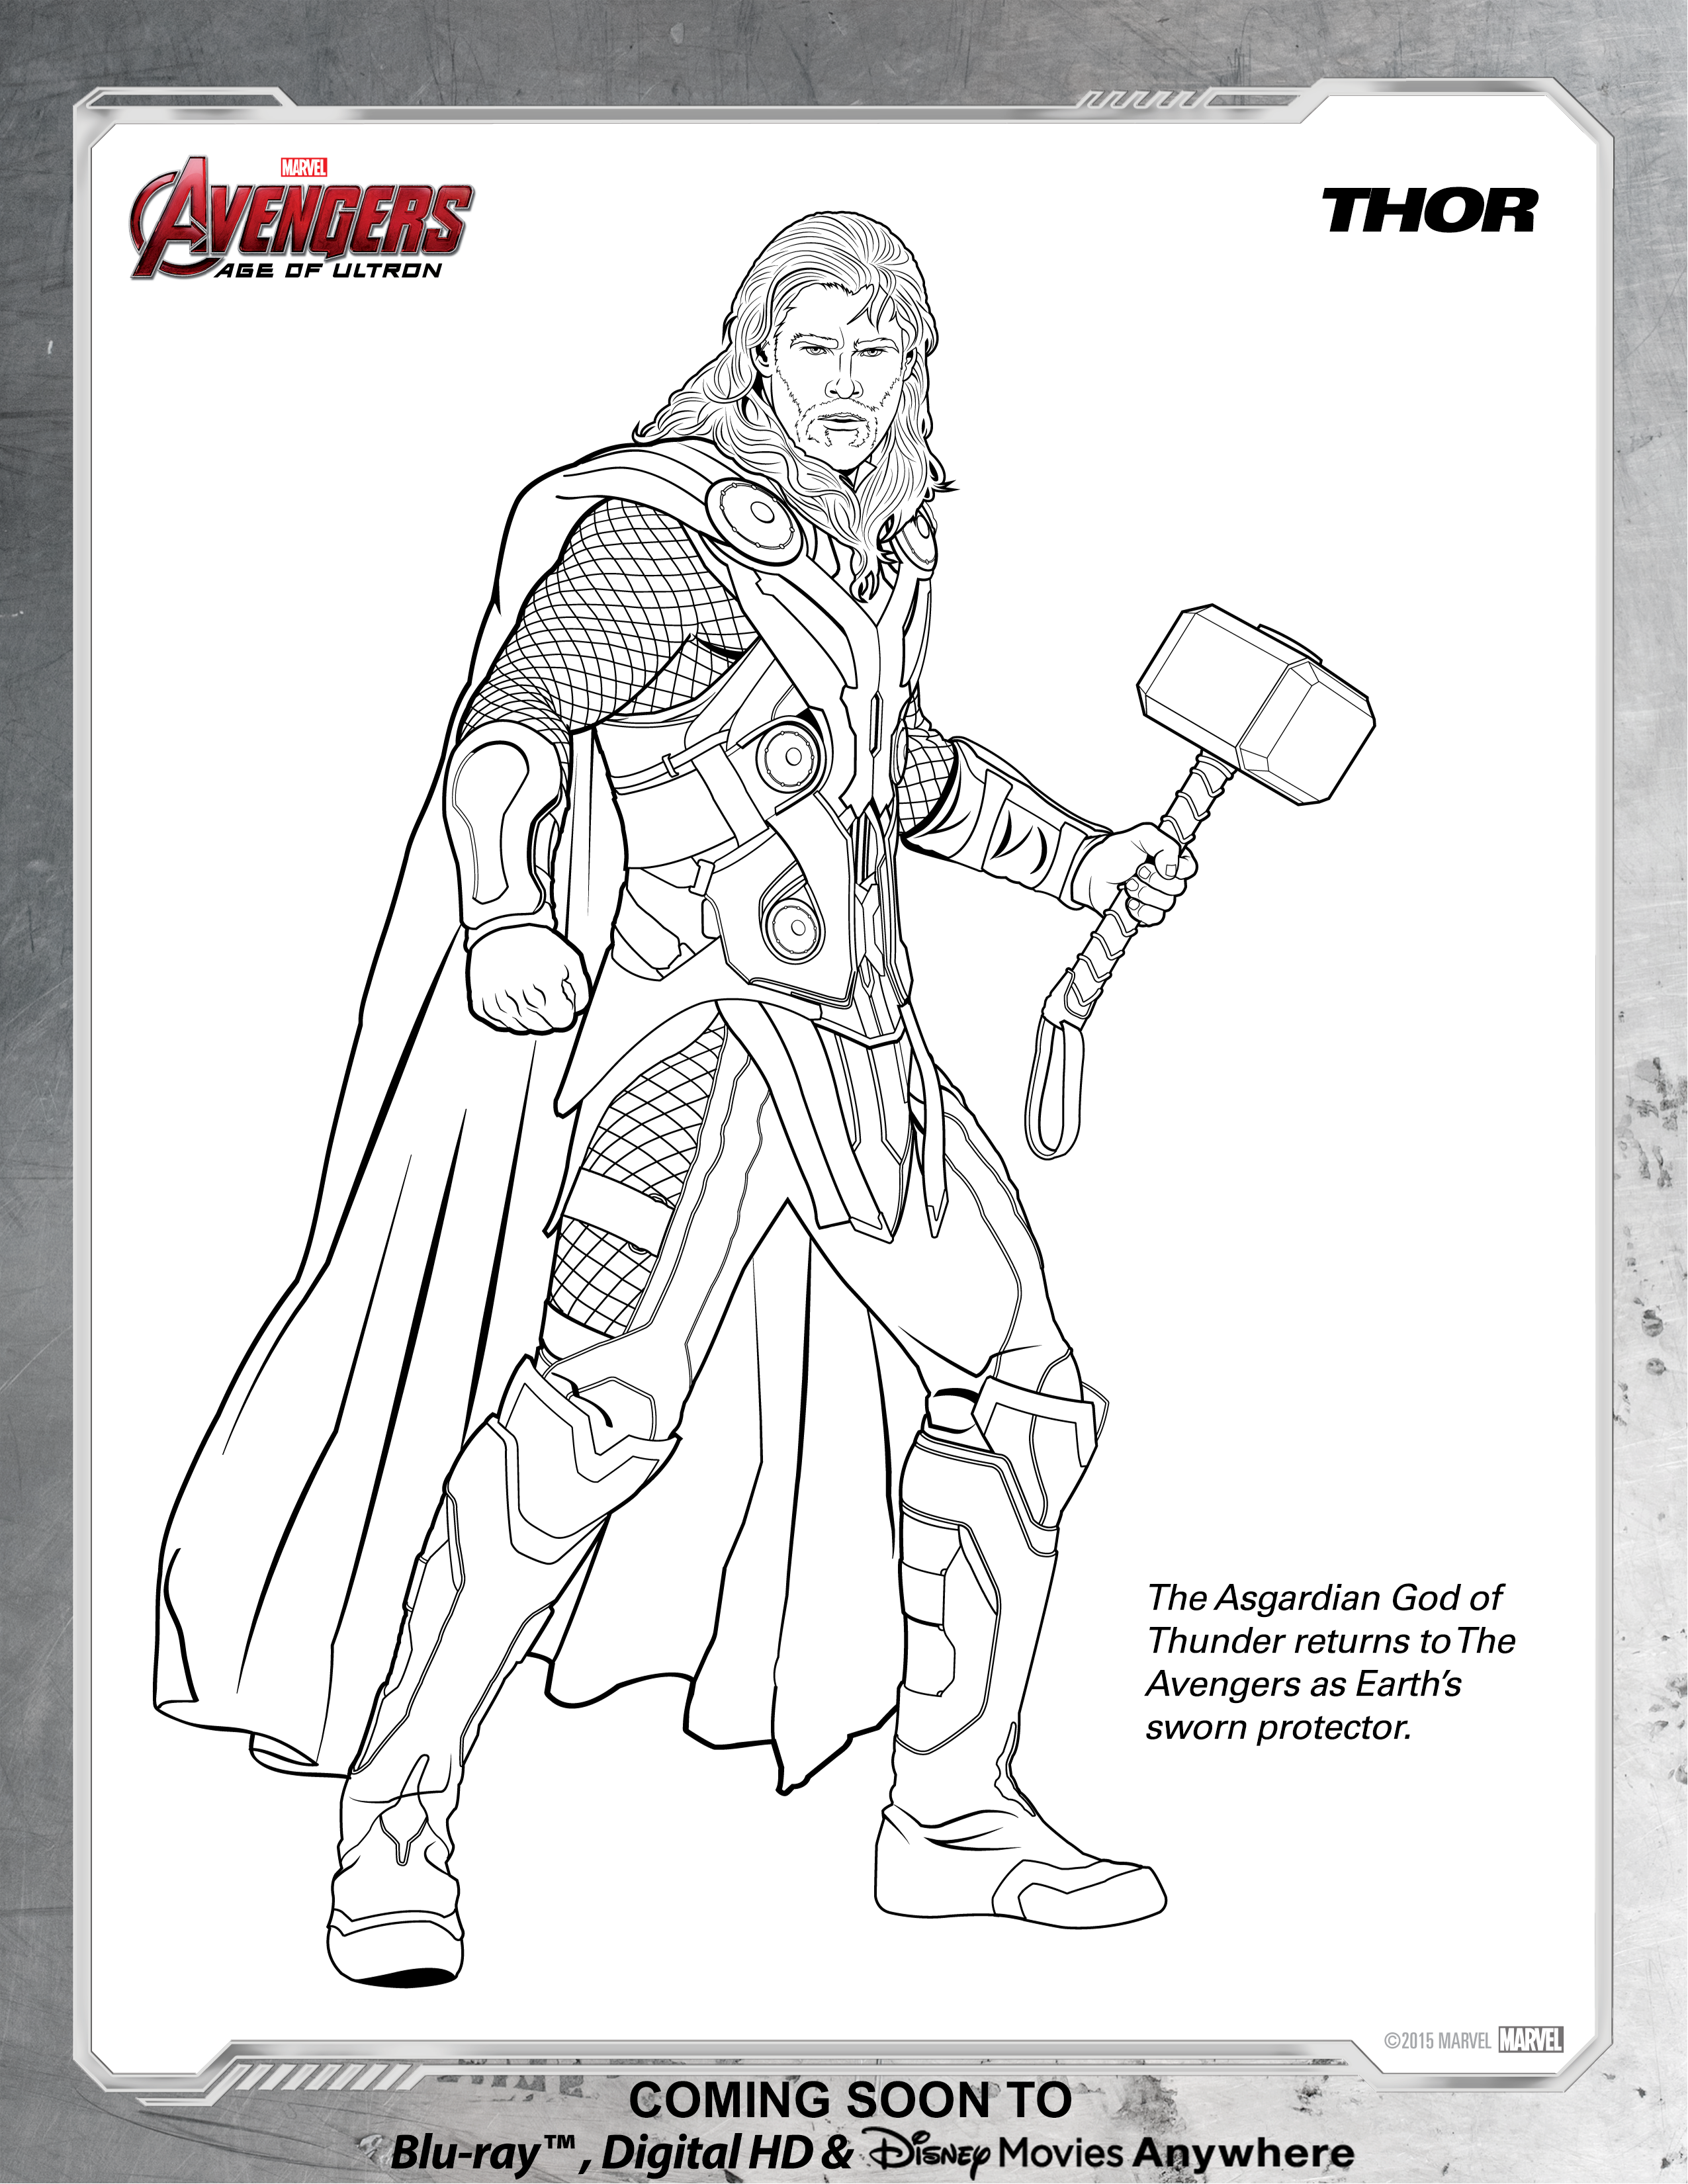 Avengers Thor Coloring Page | Disney Movies